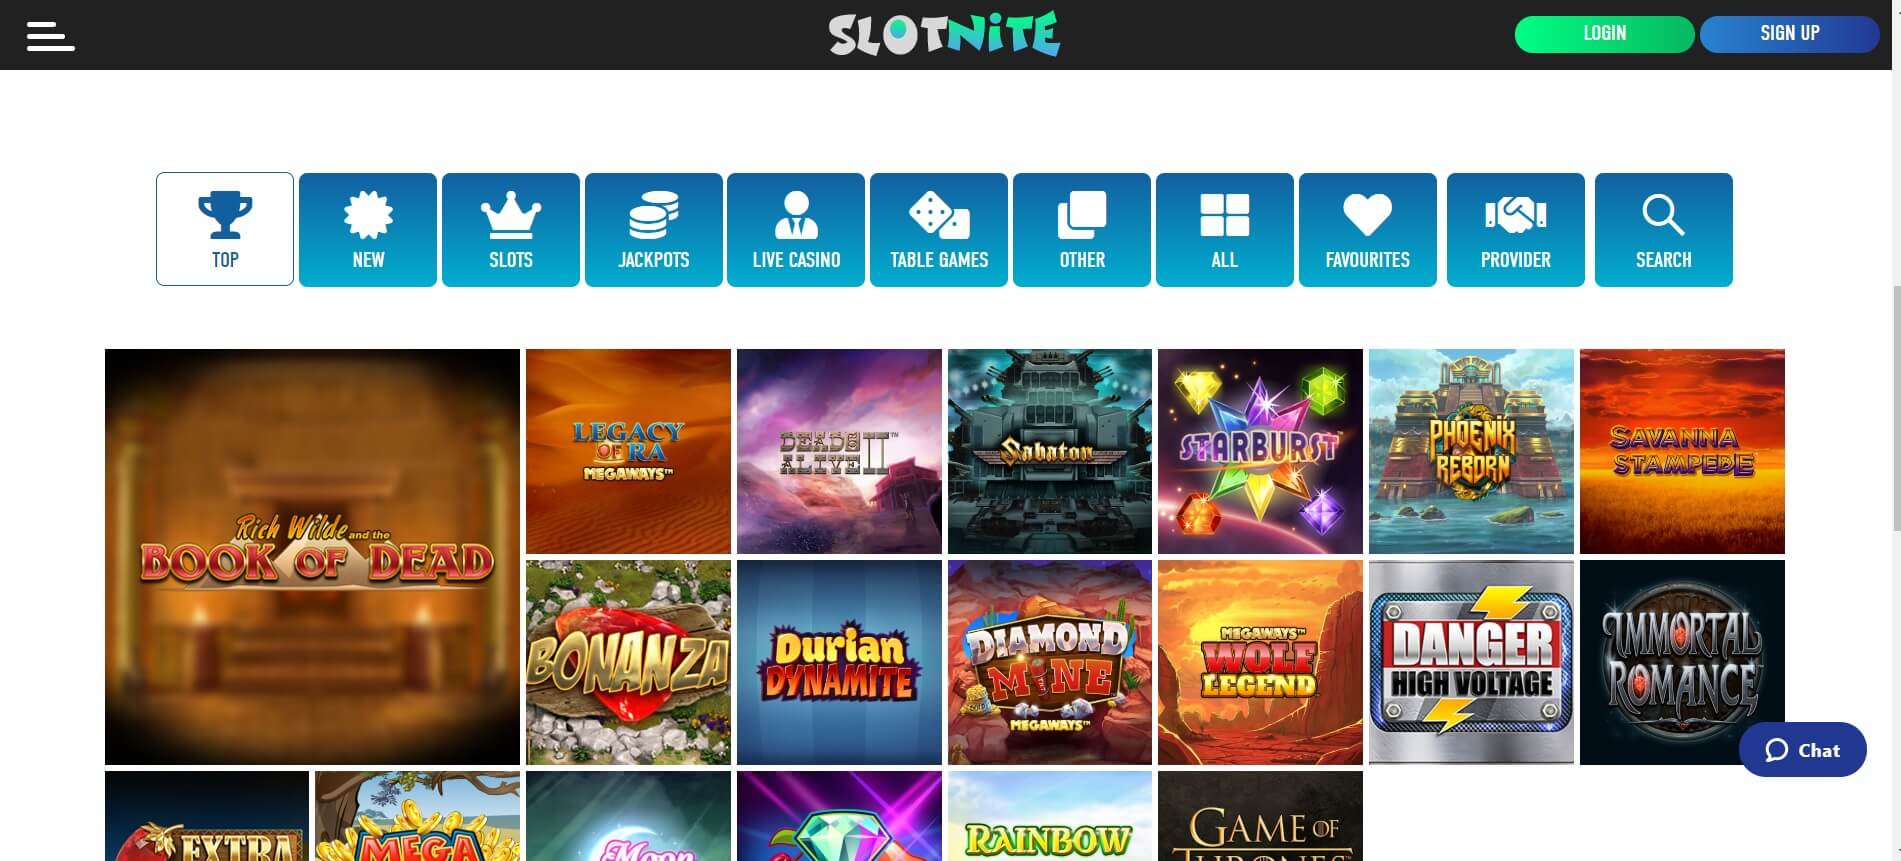 slotnite casino games and slots